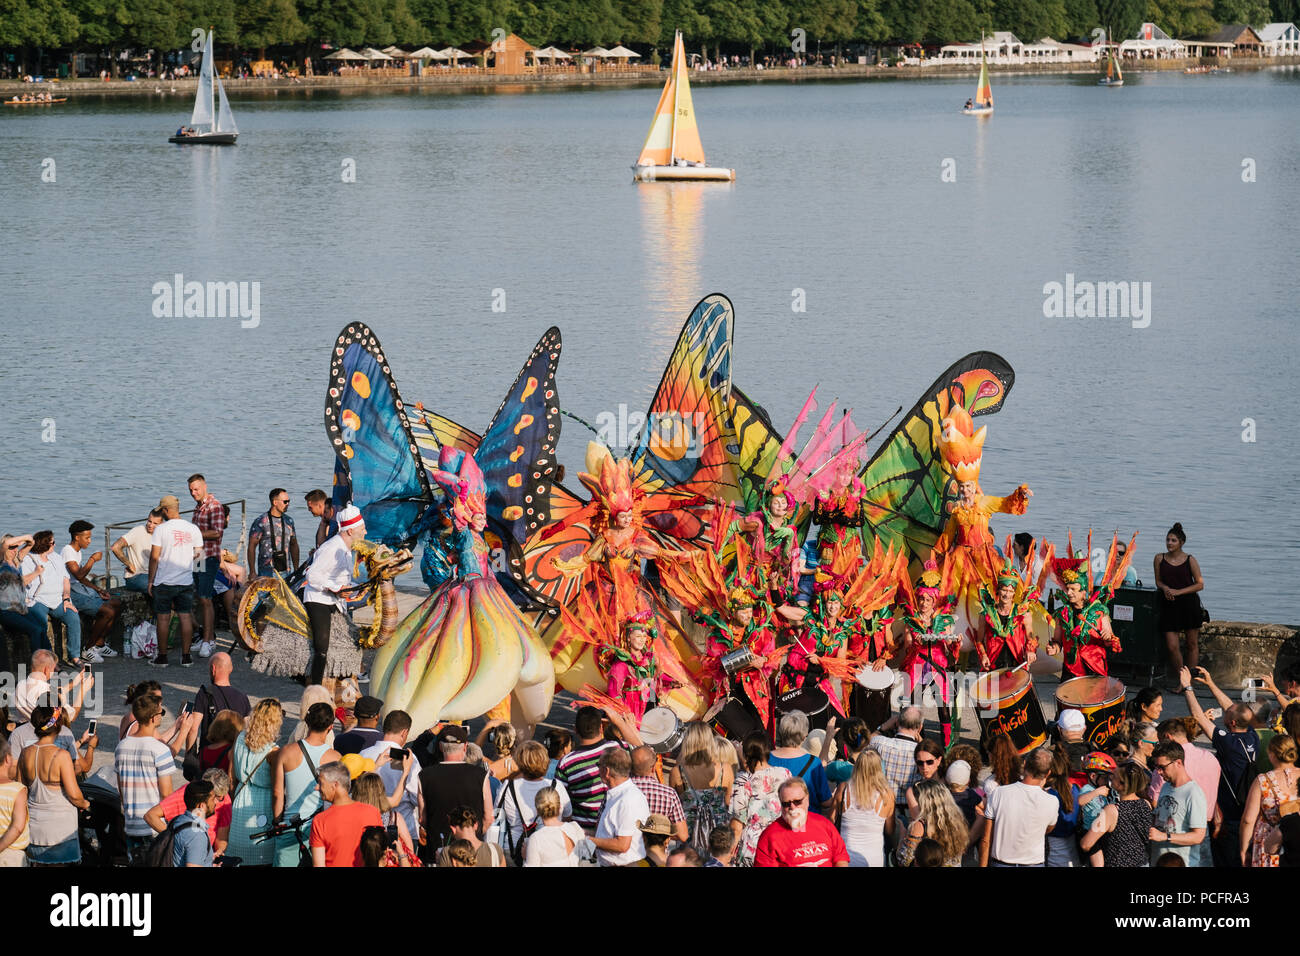 Hanover, Germany. 01st Aug, 2018. Artistes and visitors on the north bank of the lake during the 33rd Maschsee Lake Festival. More than one million visitors are expected at the Maschsee Festival, which is set to run from 1 - 19 August. Credit: Ole Spata/dpa/Alamy Live News - Stock Image